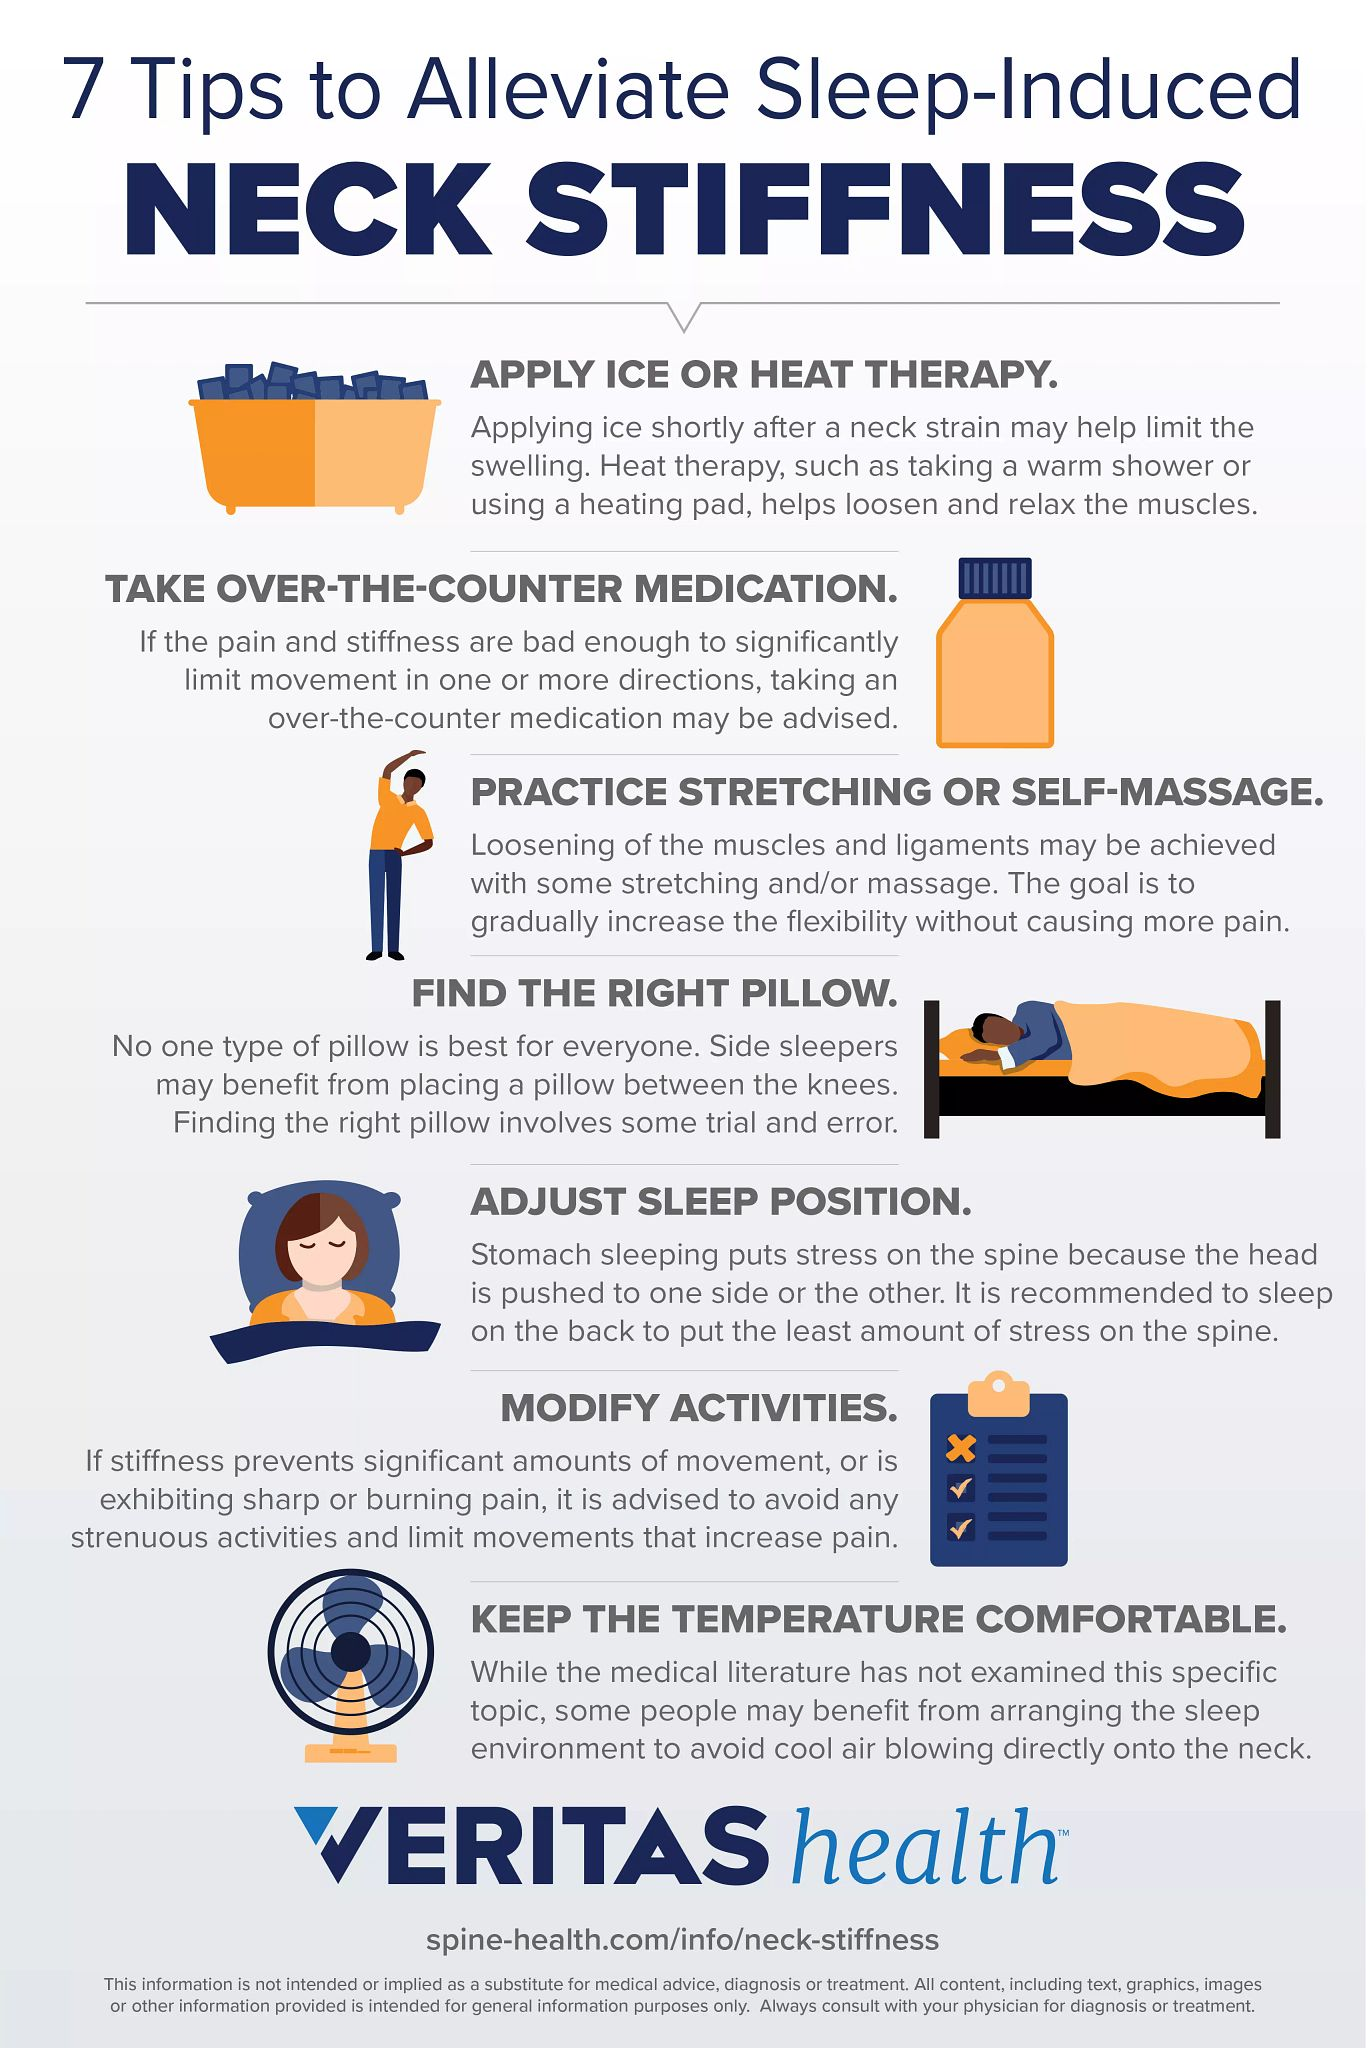 How To Treat A Stiff Neck After Sleeping